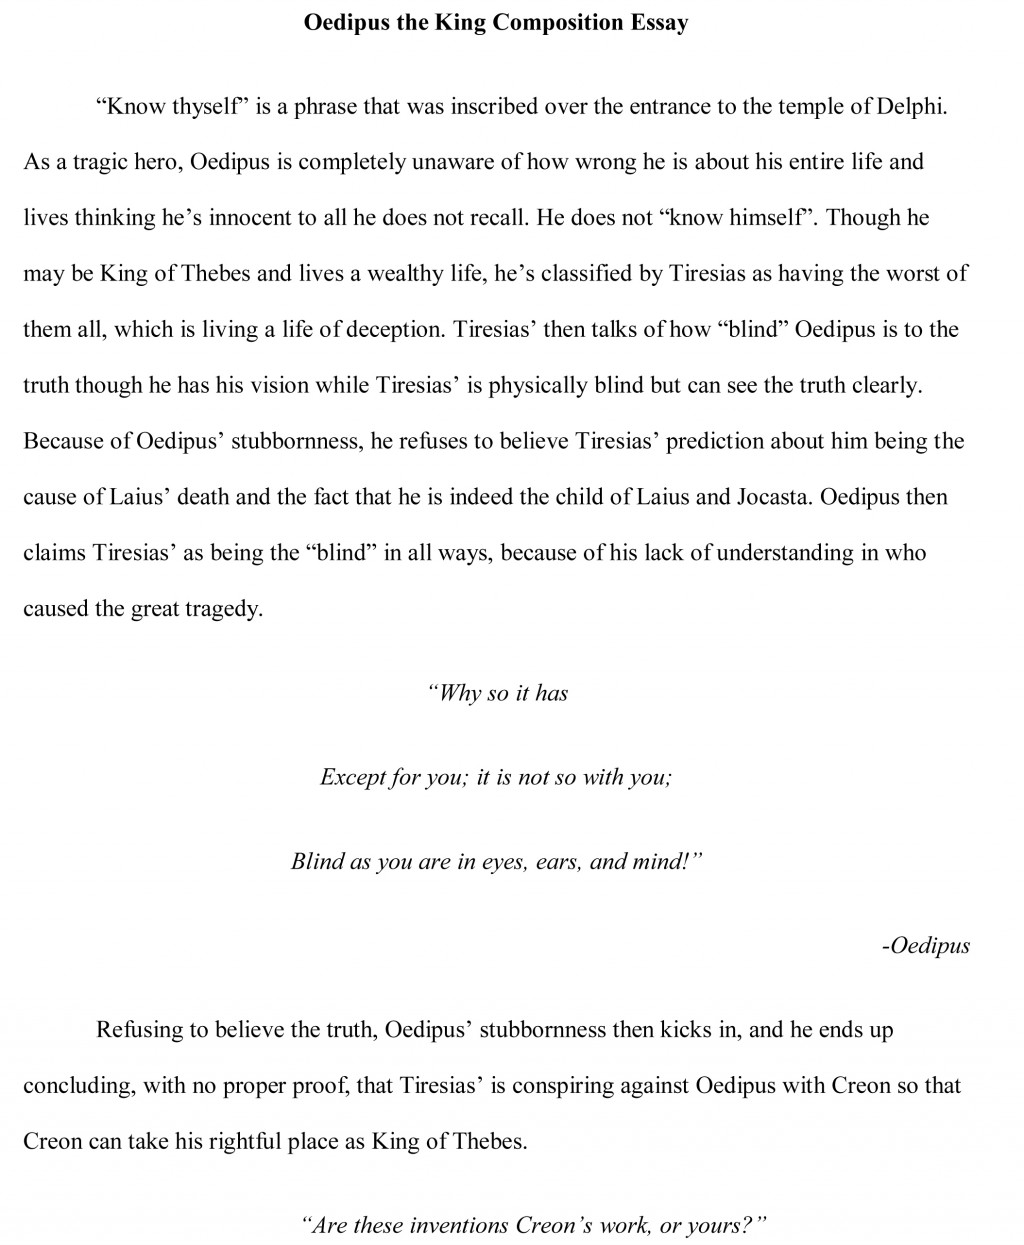 022 Oedipus Essay Free Sample How To Make Good Hook For An Outstanding A Catchy Narrative Great Large